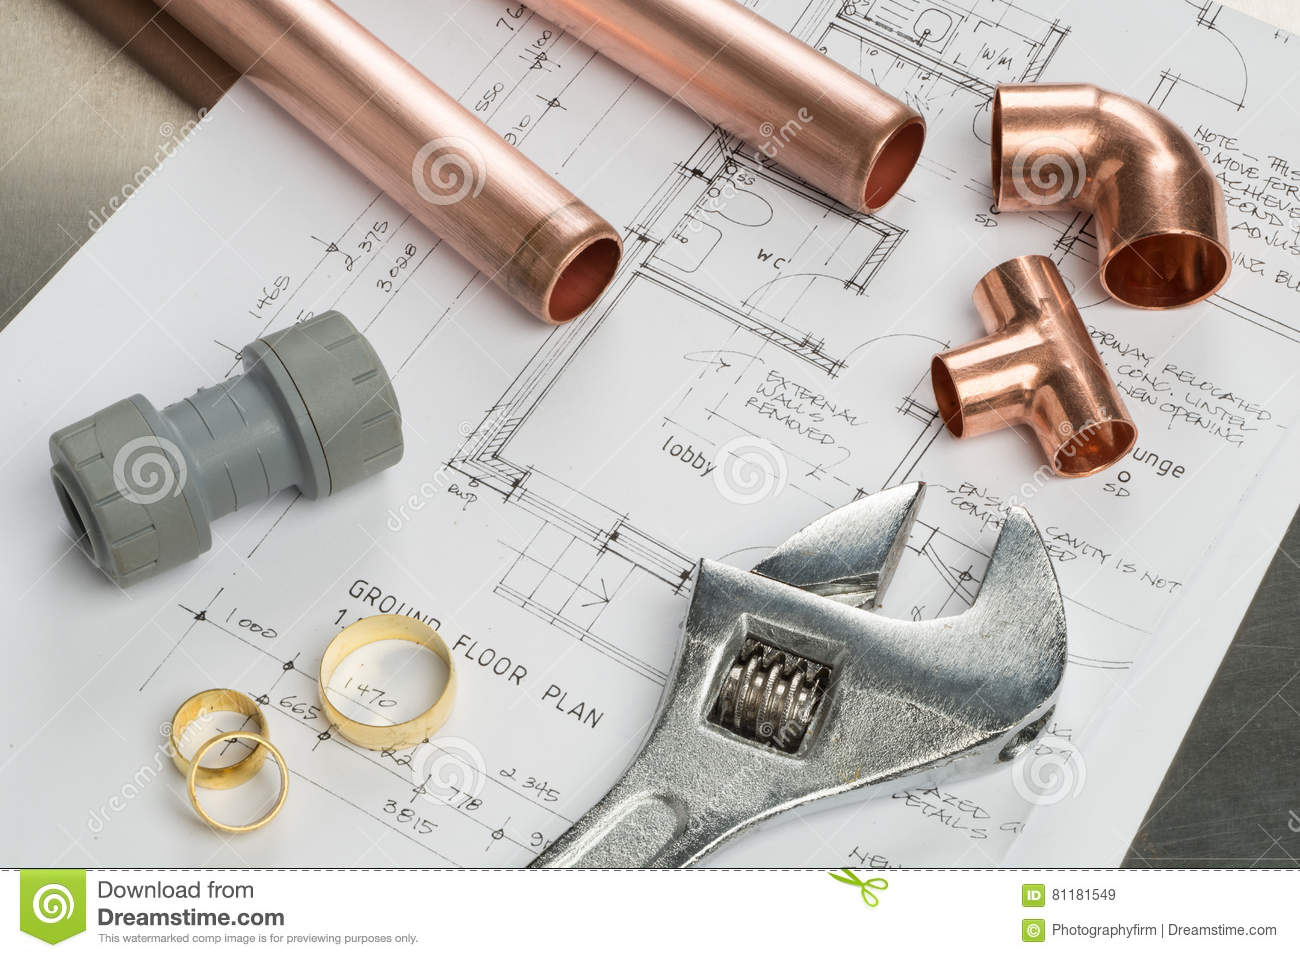 Plumbing tools and materials royalty free stock image